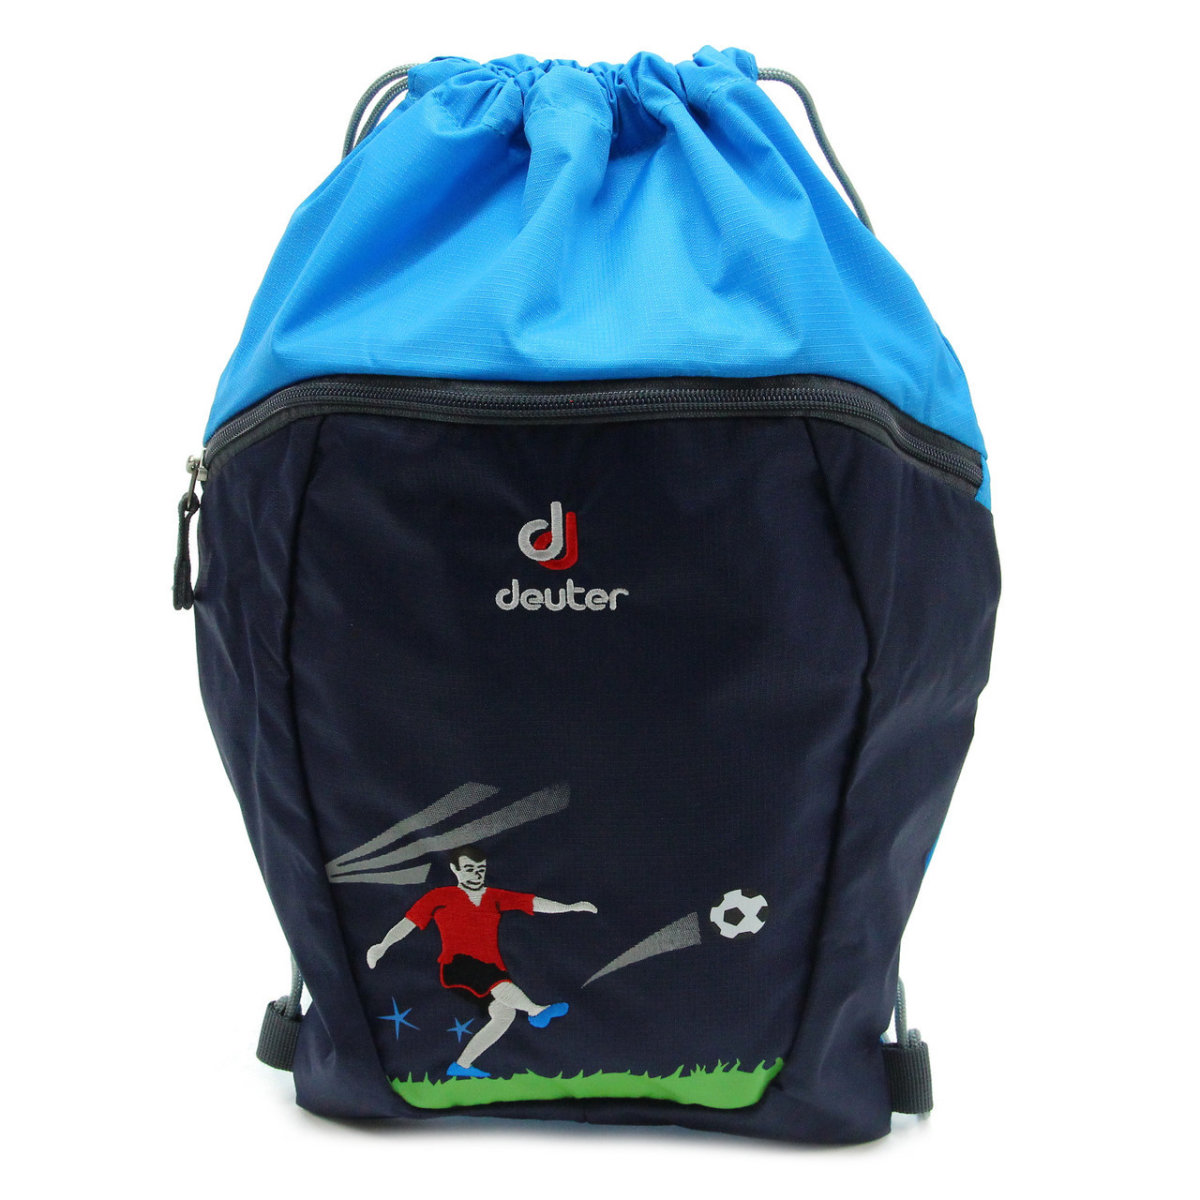 Набор сумок Deuter OneTwo Set - Sneaker Bag navy soccer 8 OneTwo Set - Hopper 3880017 3045 (SET)